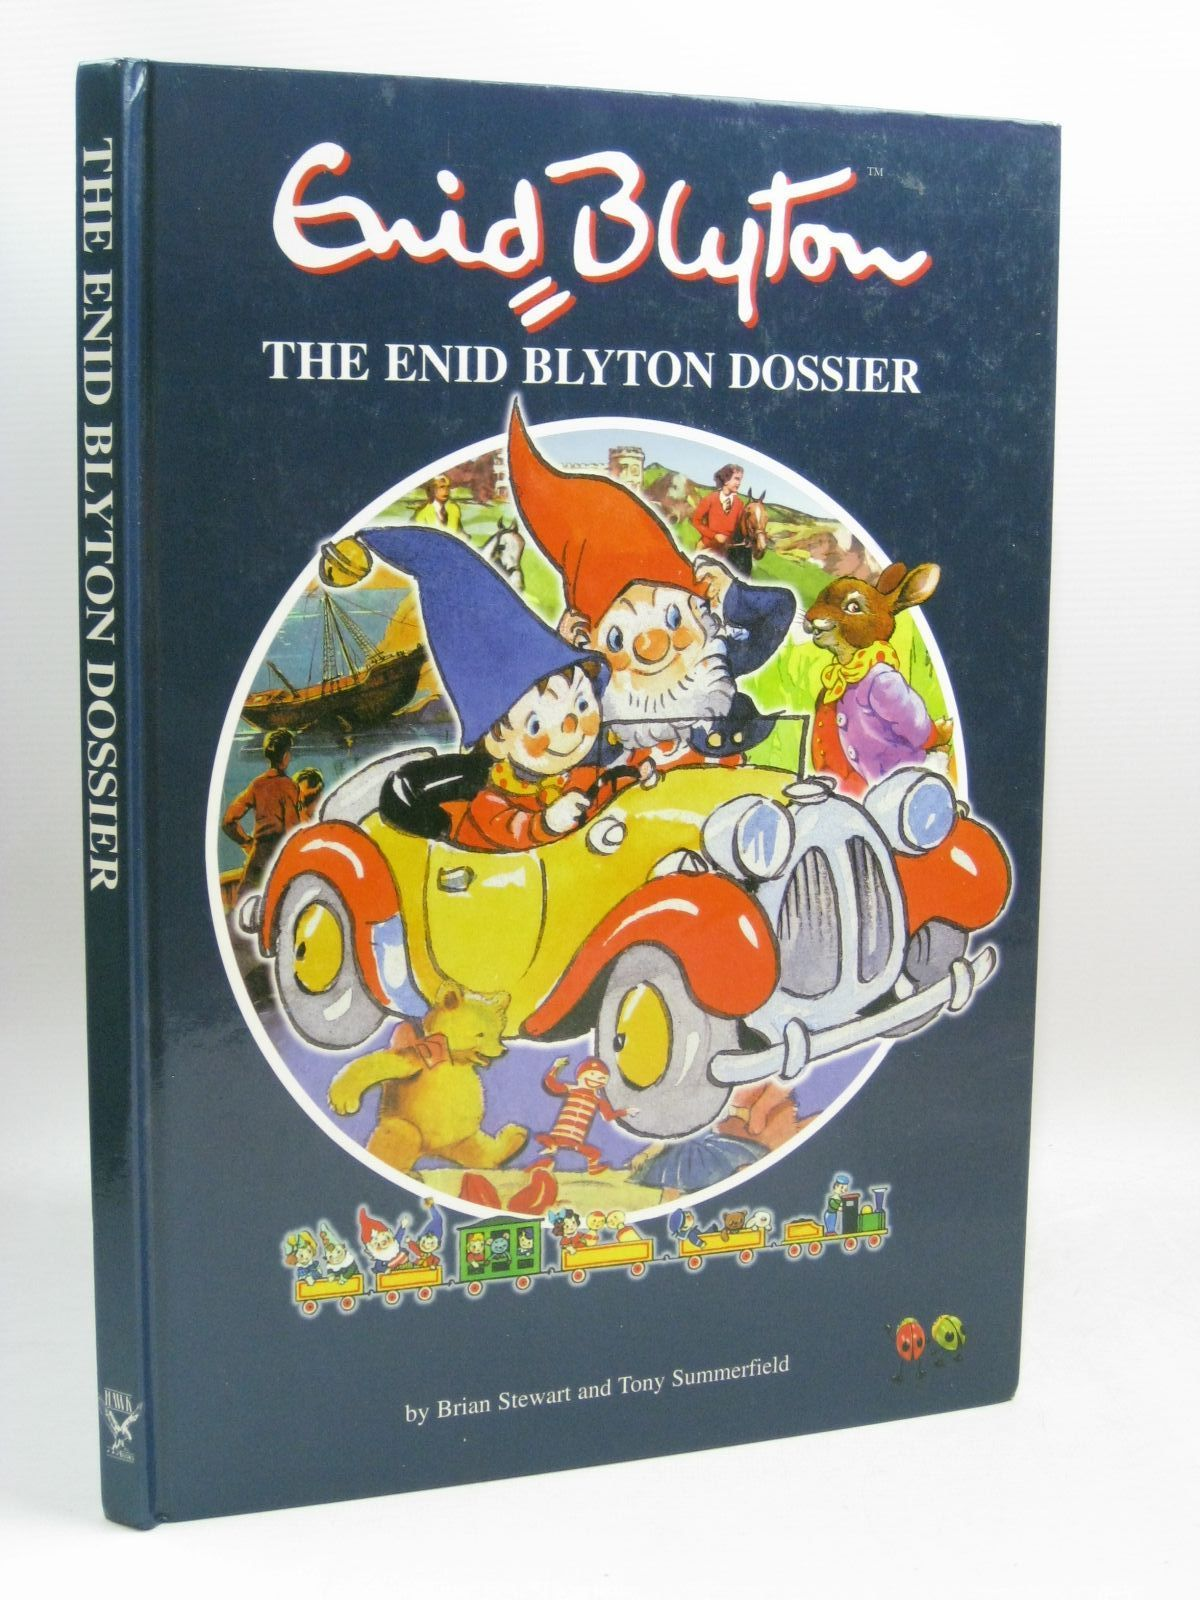 Photo of THE ENID BLYTON DOSSIER written by Stewart, Brian<br />Summerfield, Tony published by Hawk Books Ltd. (STOCK CODE: 1405671)  for sale by Stella & Rose's Books